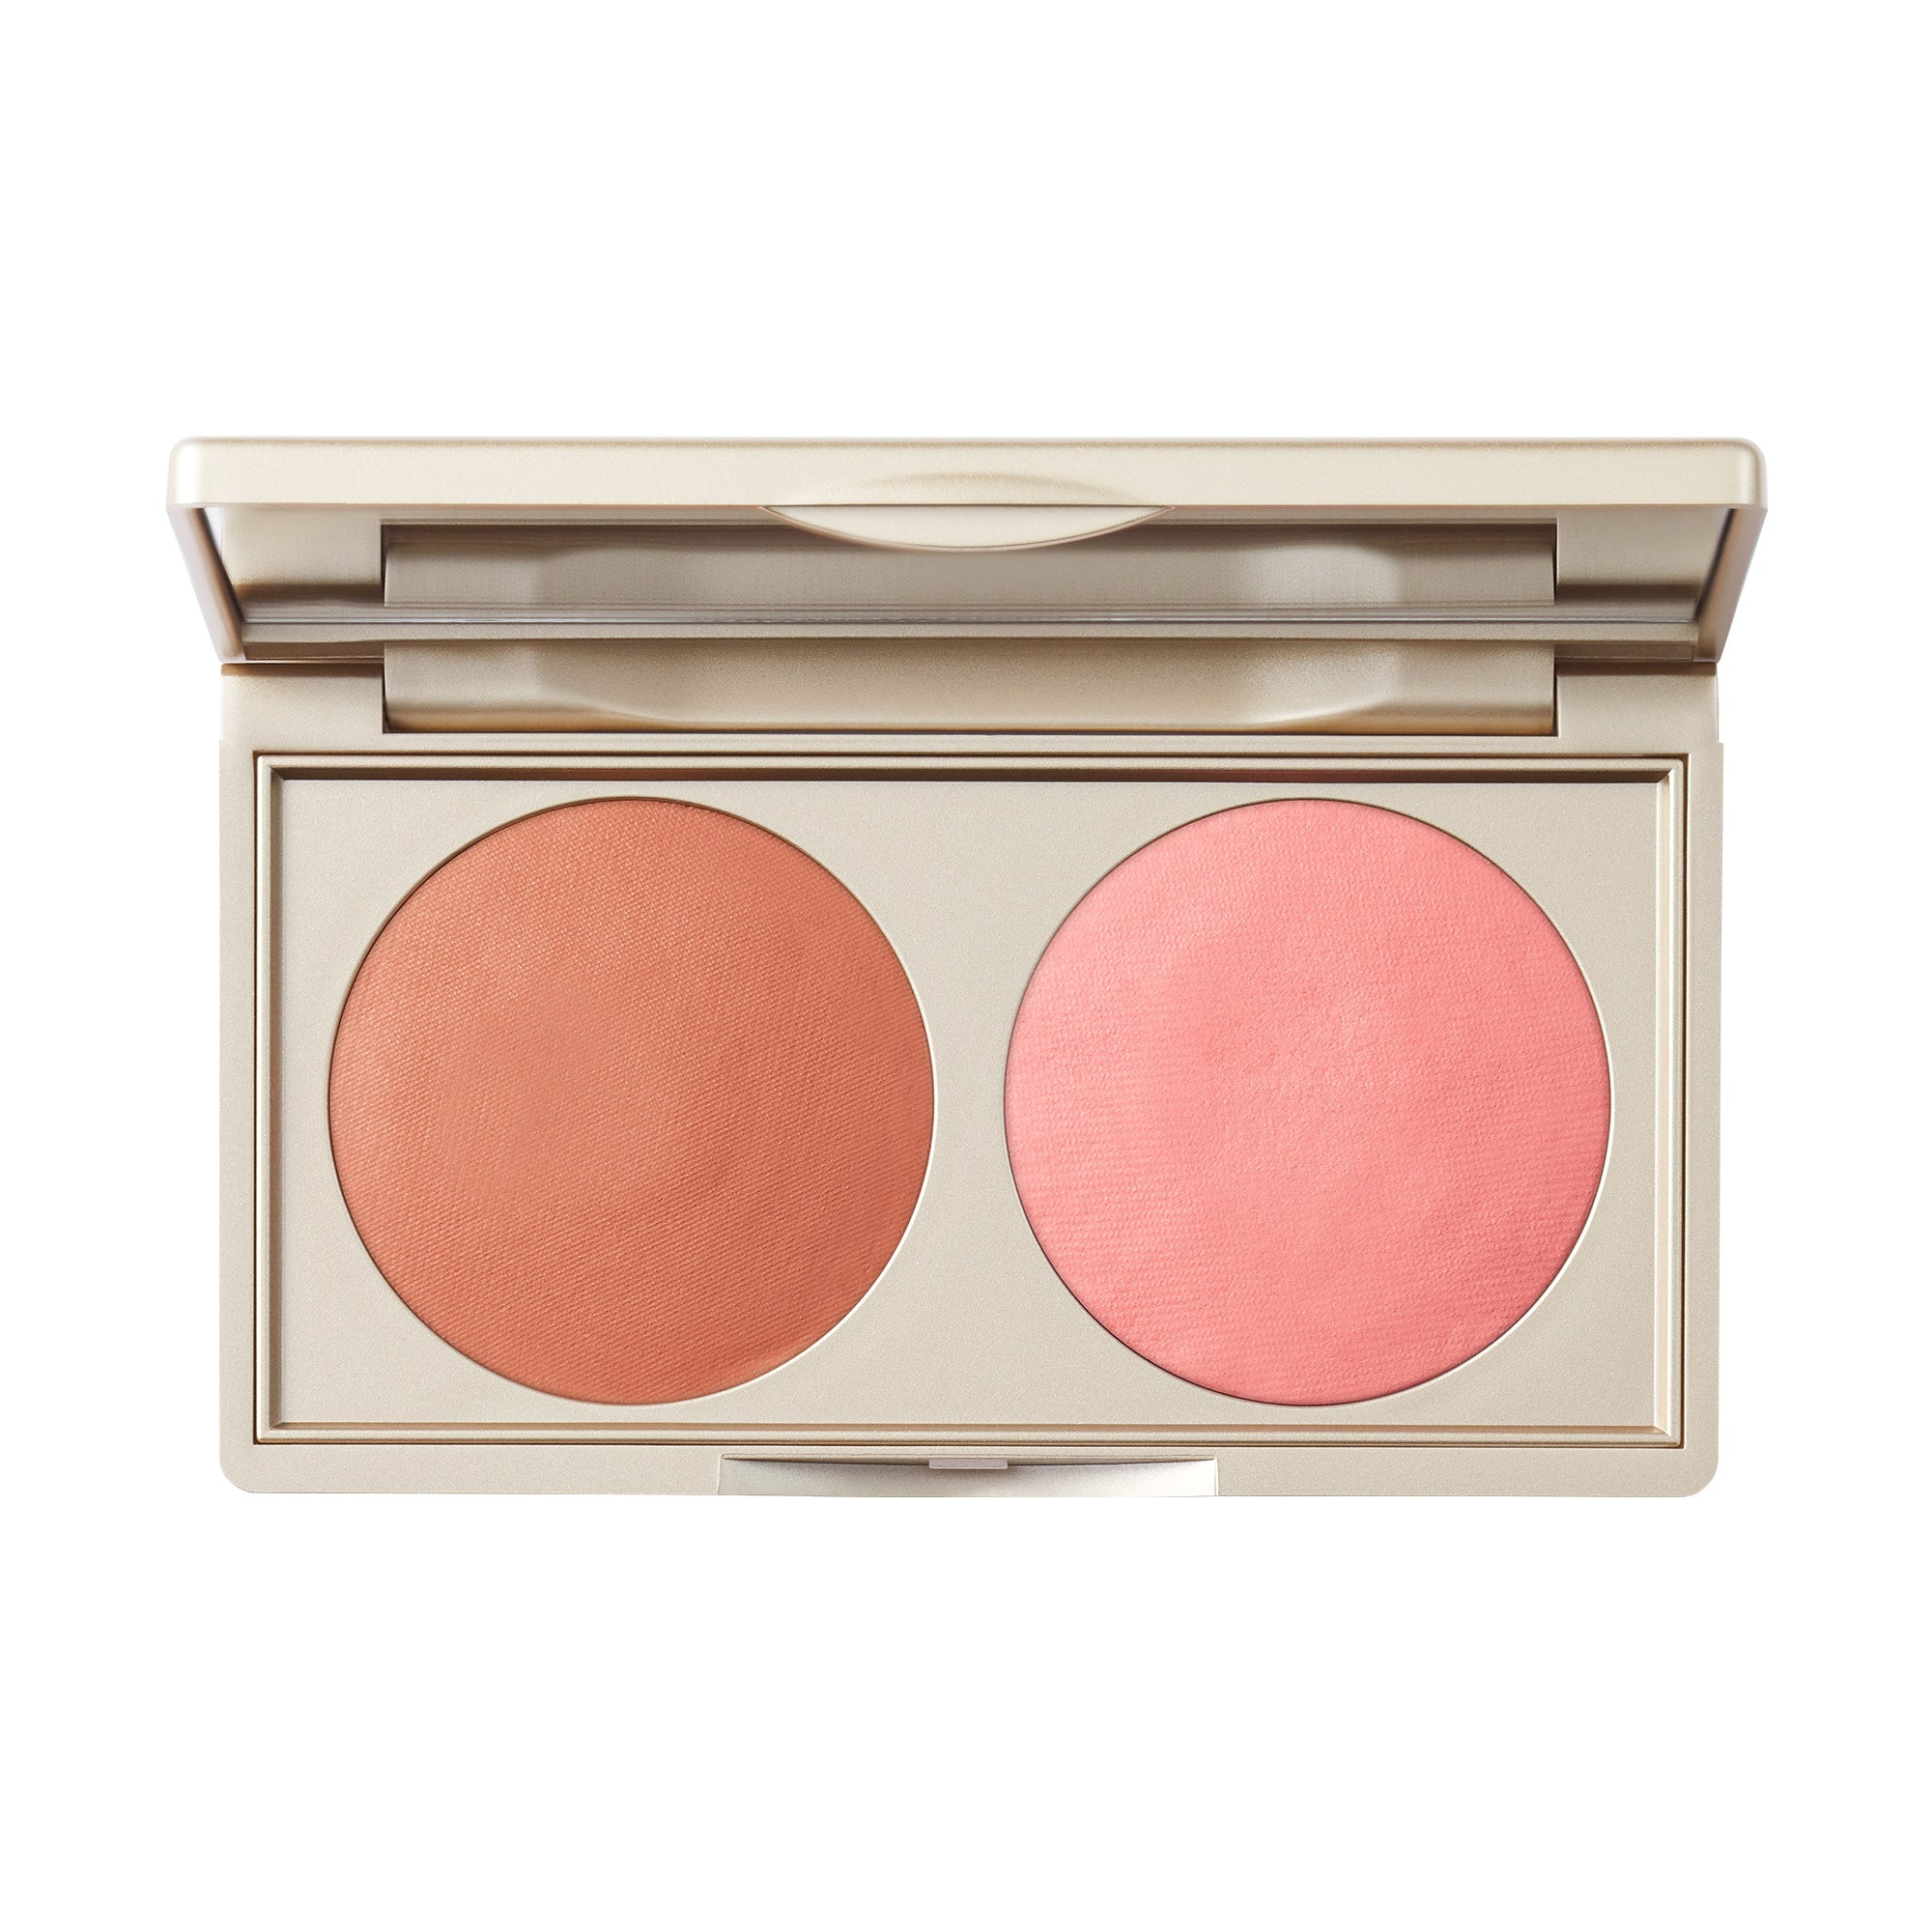 Stila Canada Putty Blush/Bronzer Duo Bronzer With Pink Undertones / Cheek Warm Peach